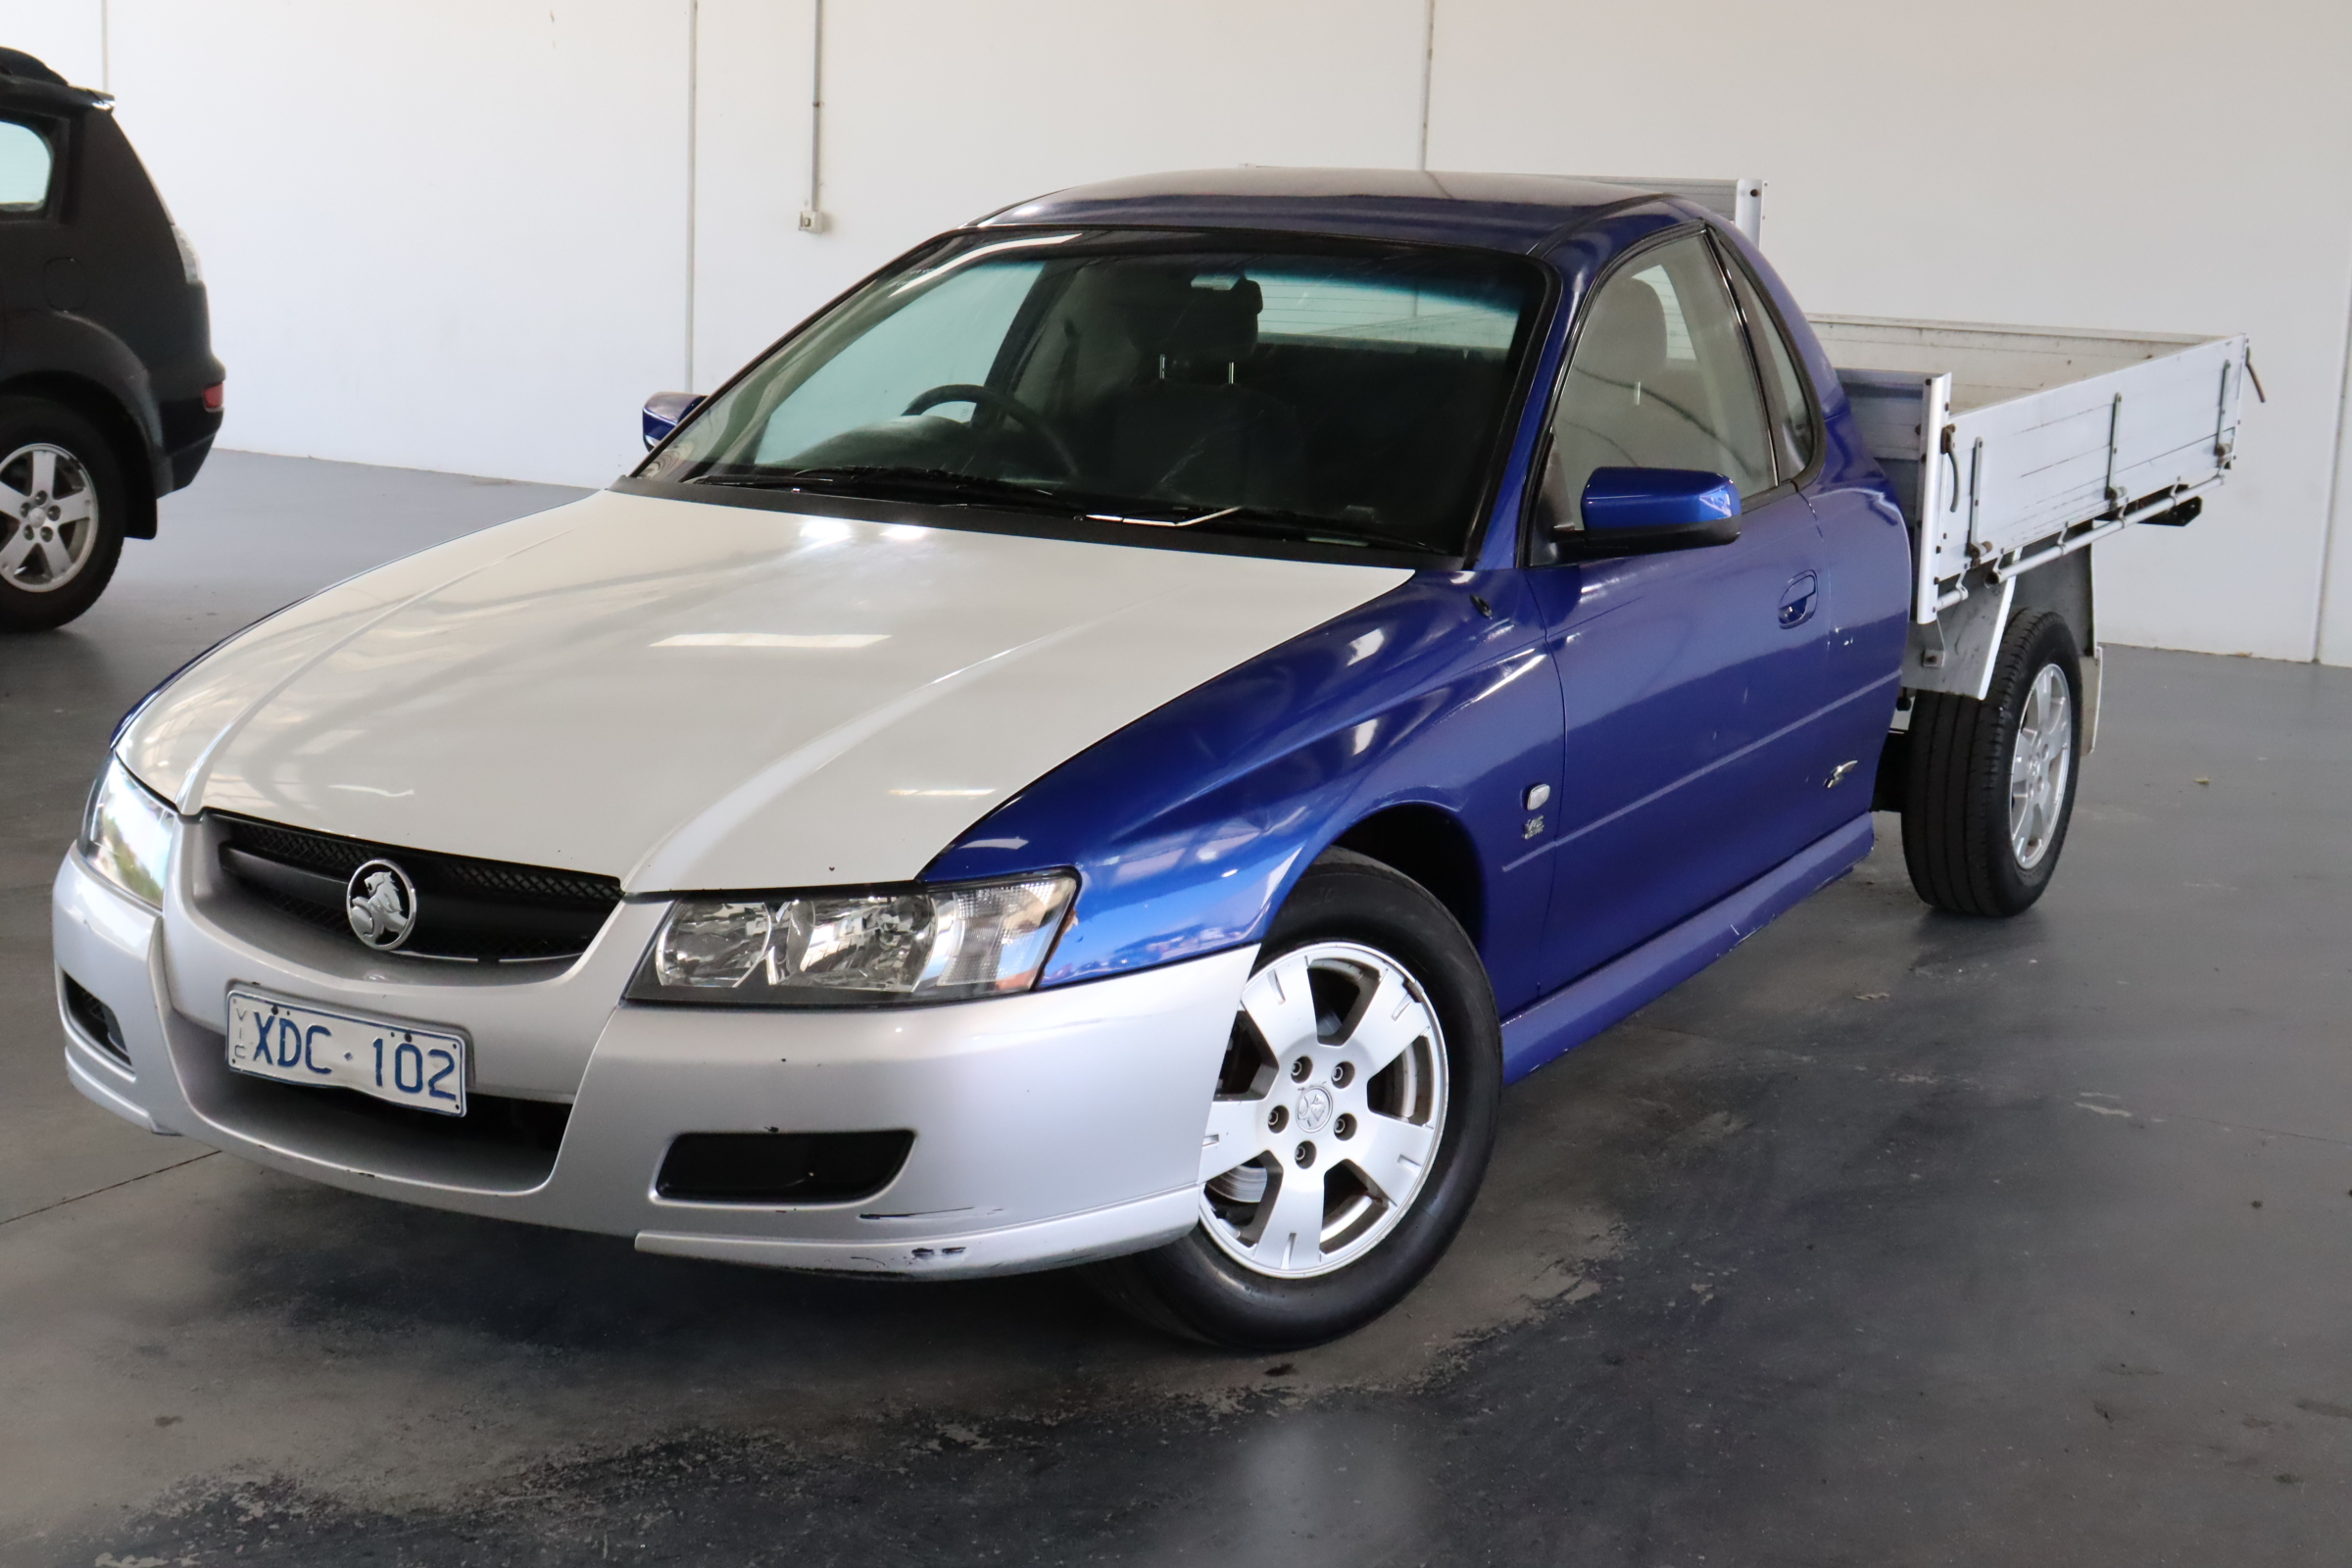 2004 Holden Commodore One Tonner S VZ Automatic Cab Chassis